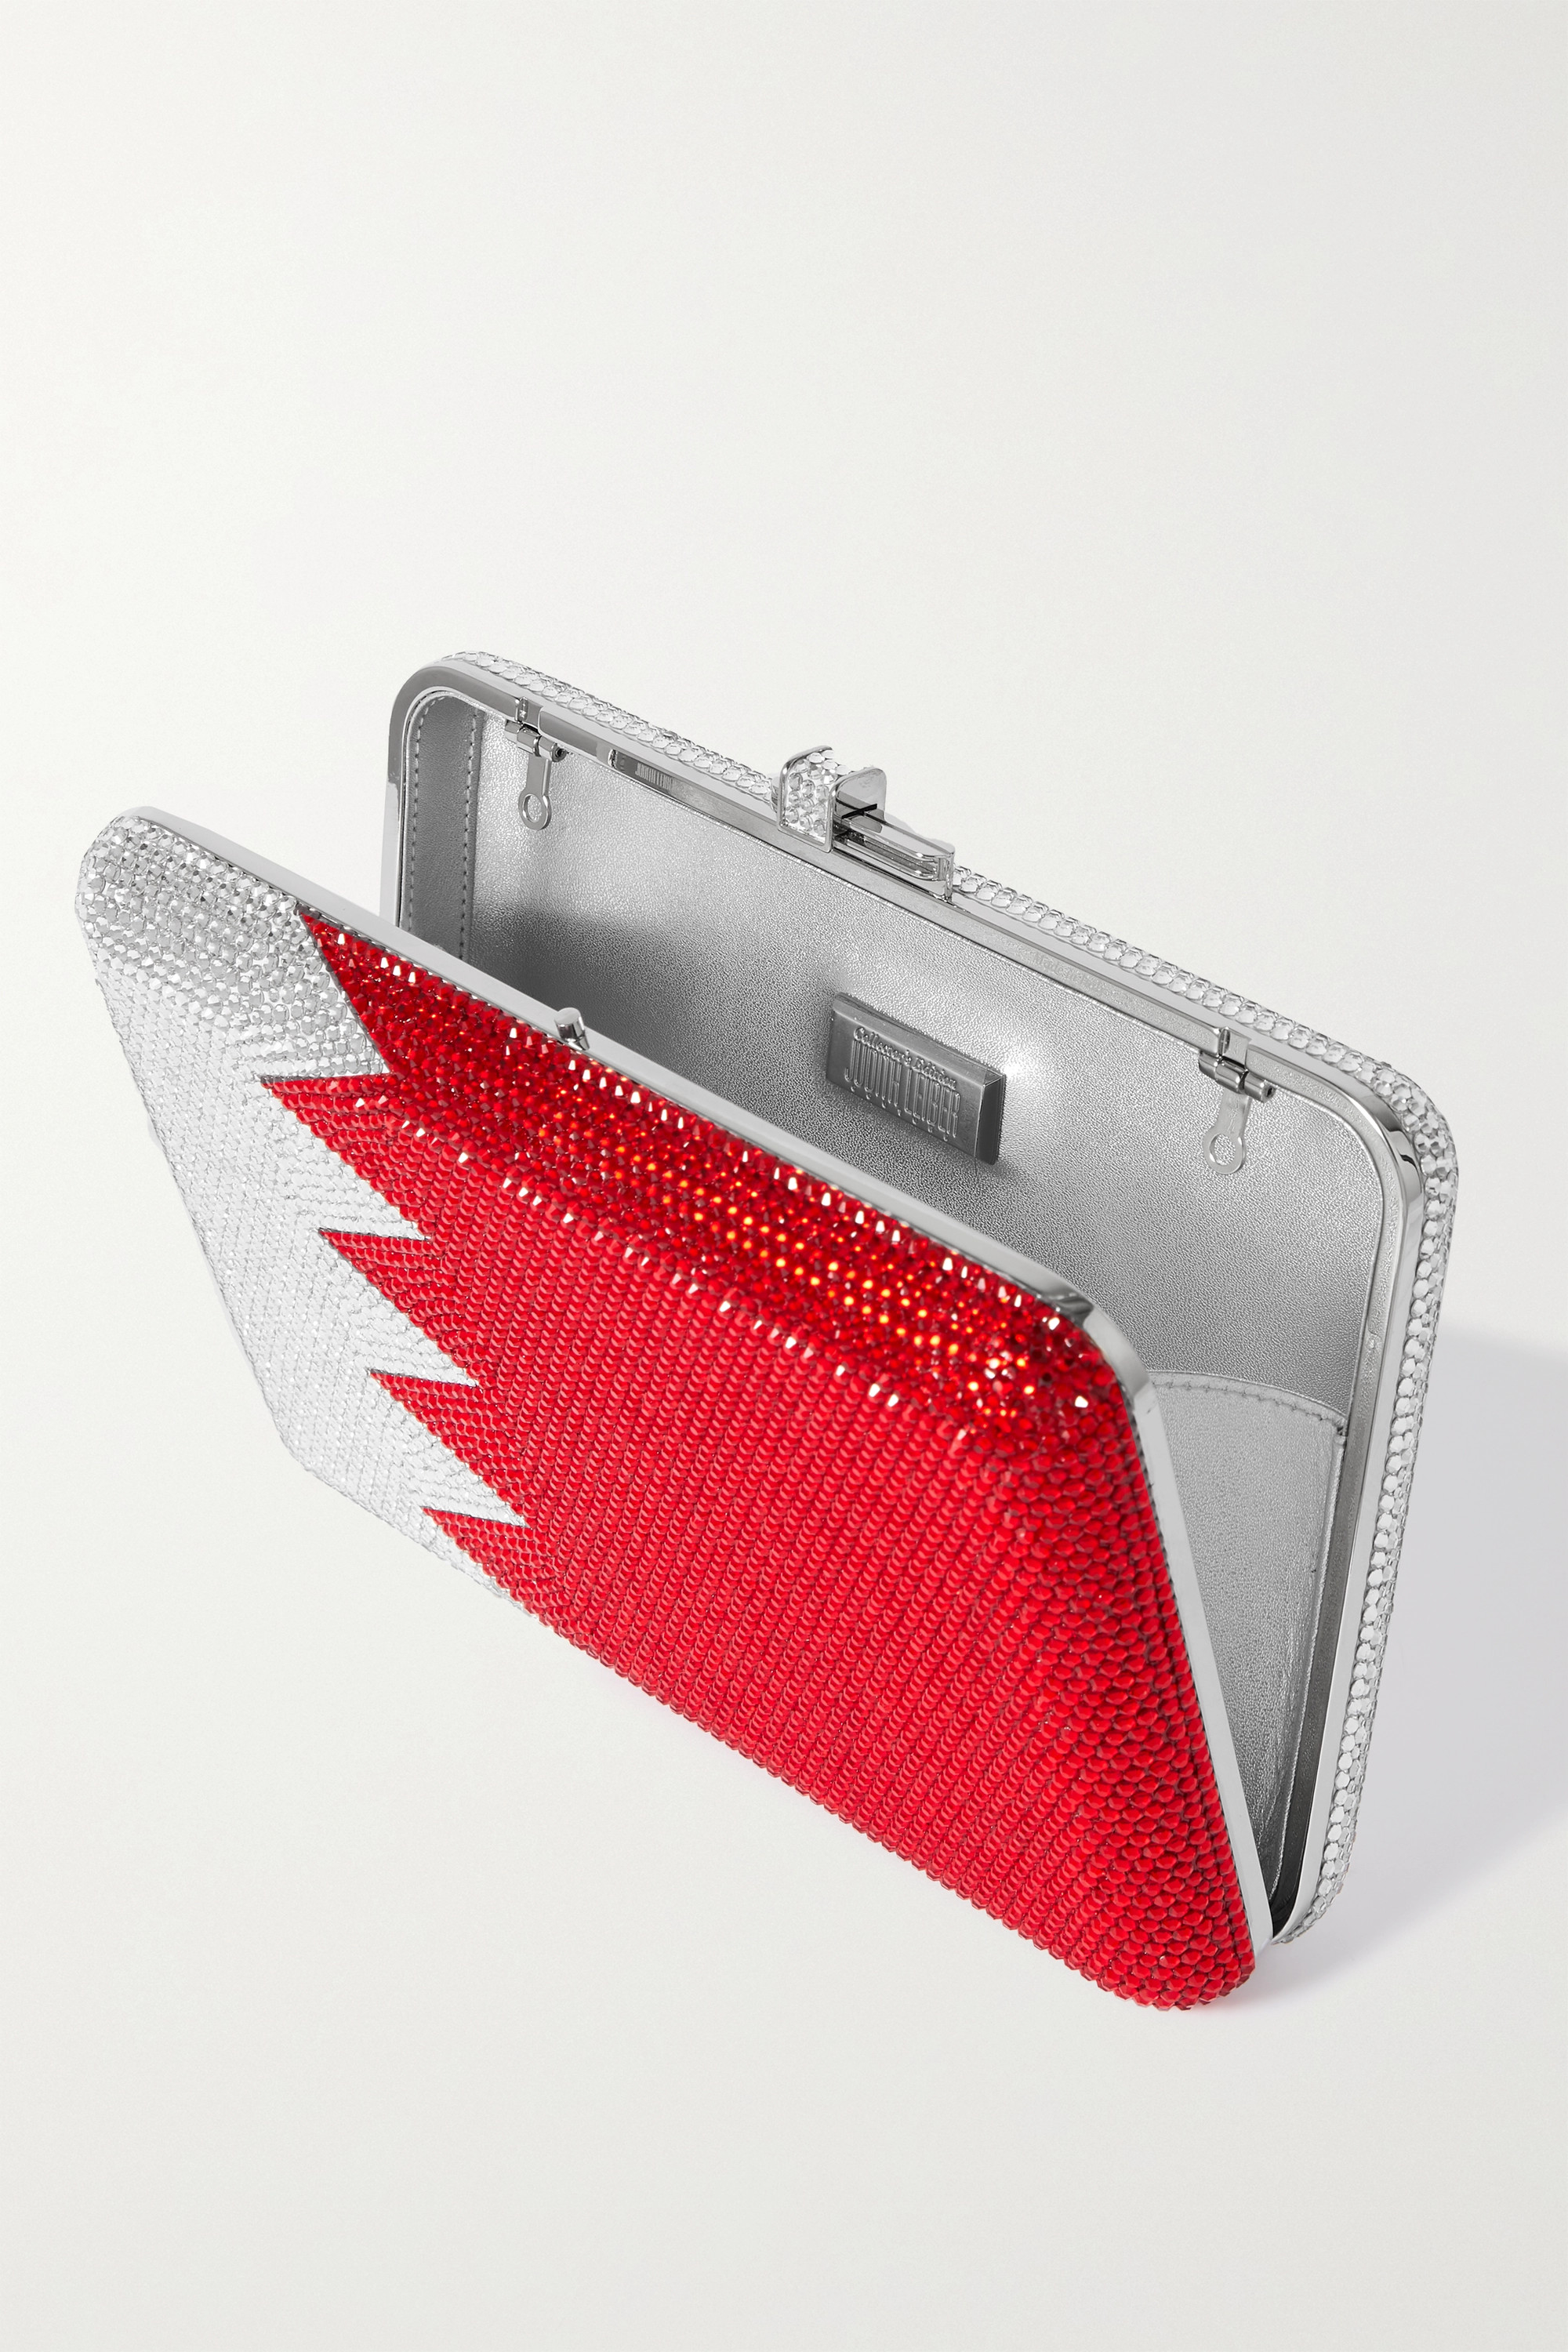 Judith Leiber Couture Flag crystal-embellished silver-tone clutch